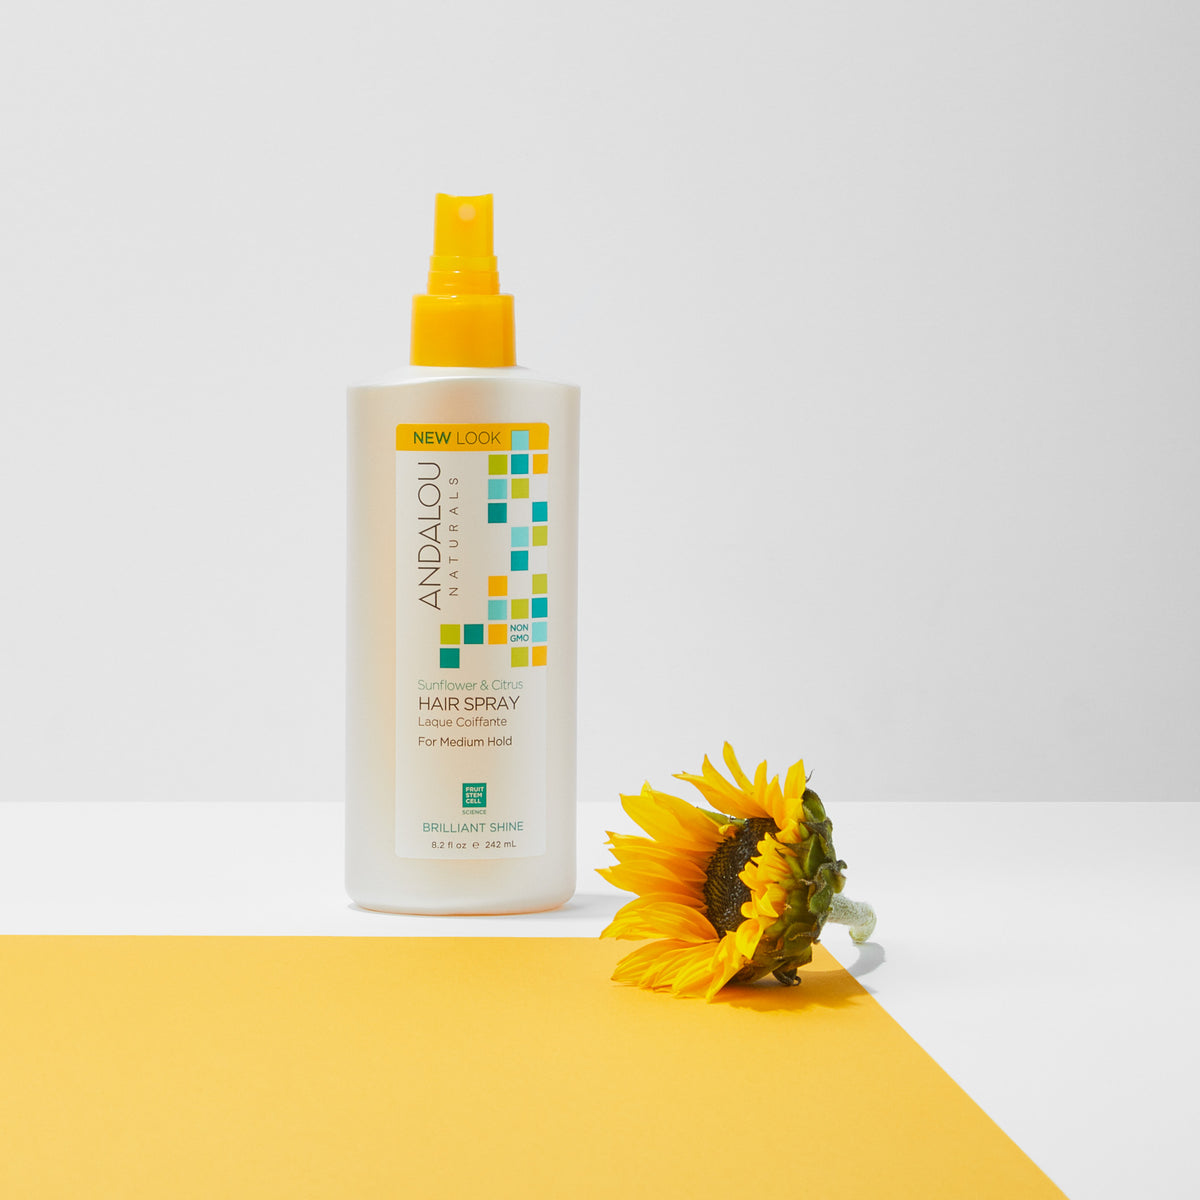 Andalou Naturals Sunflower & Citrus Brilliant Shine Hair Spray and sunflower